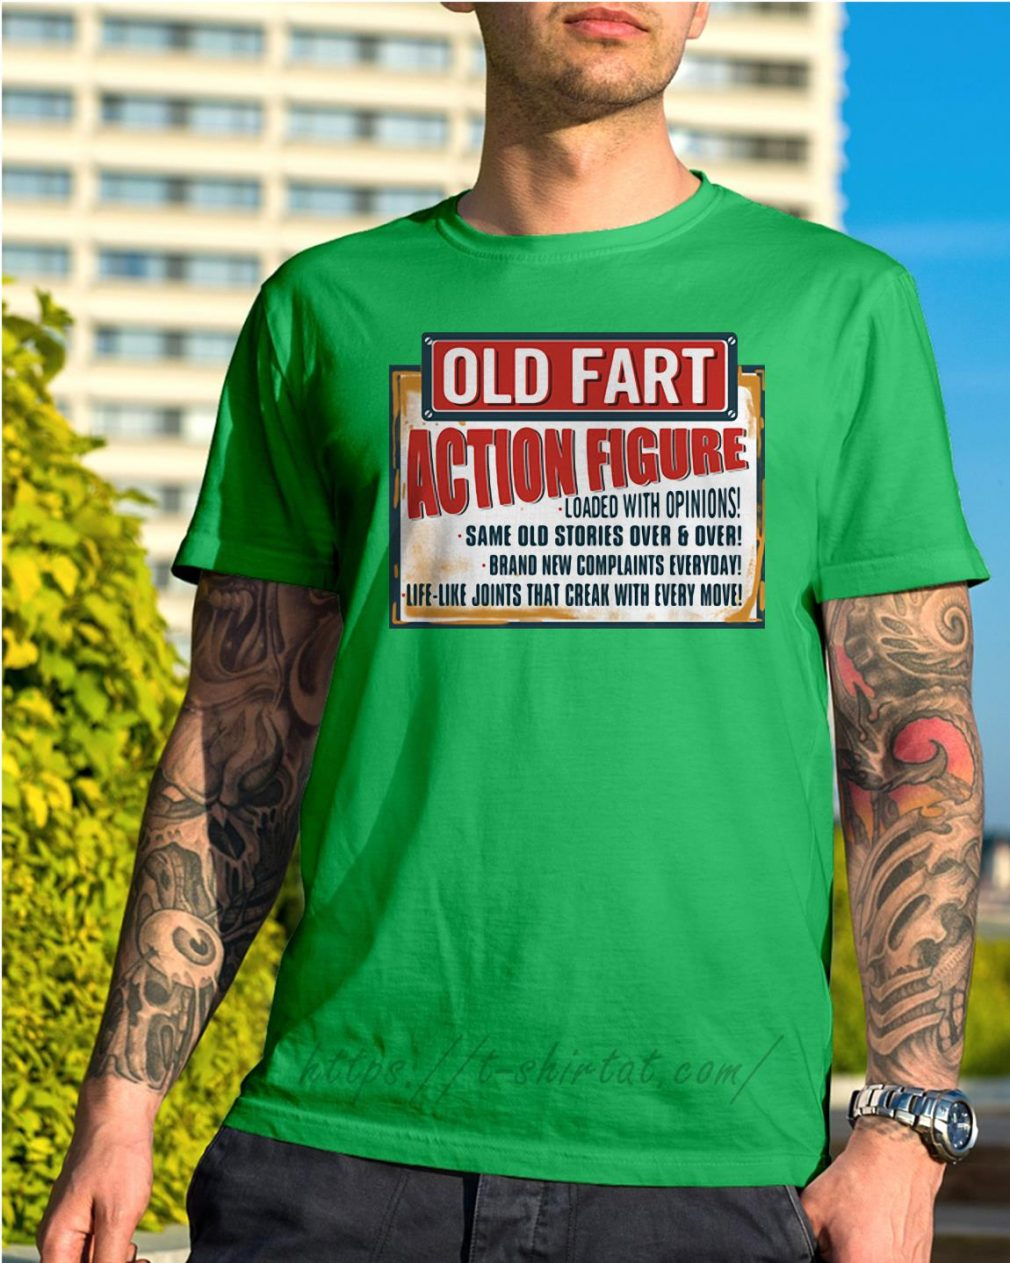 Old fart action figure loaded with opinions Shirt green